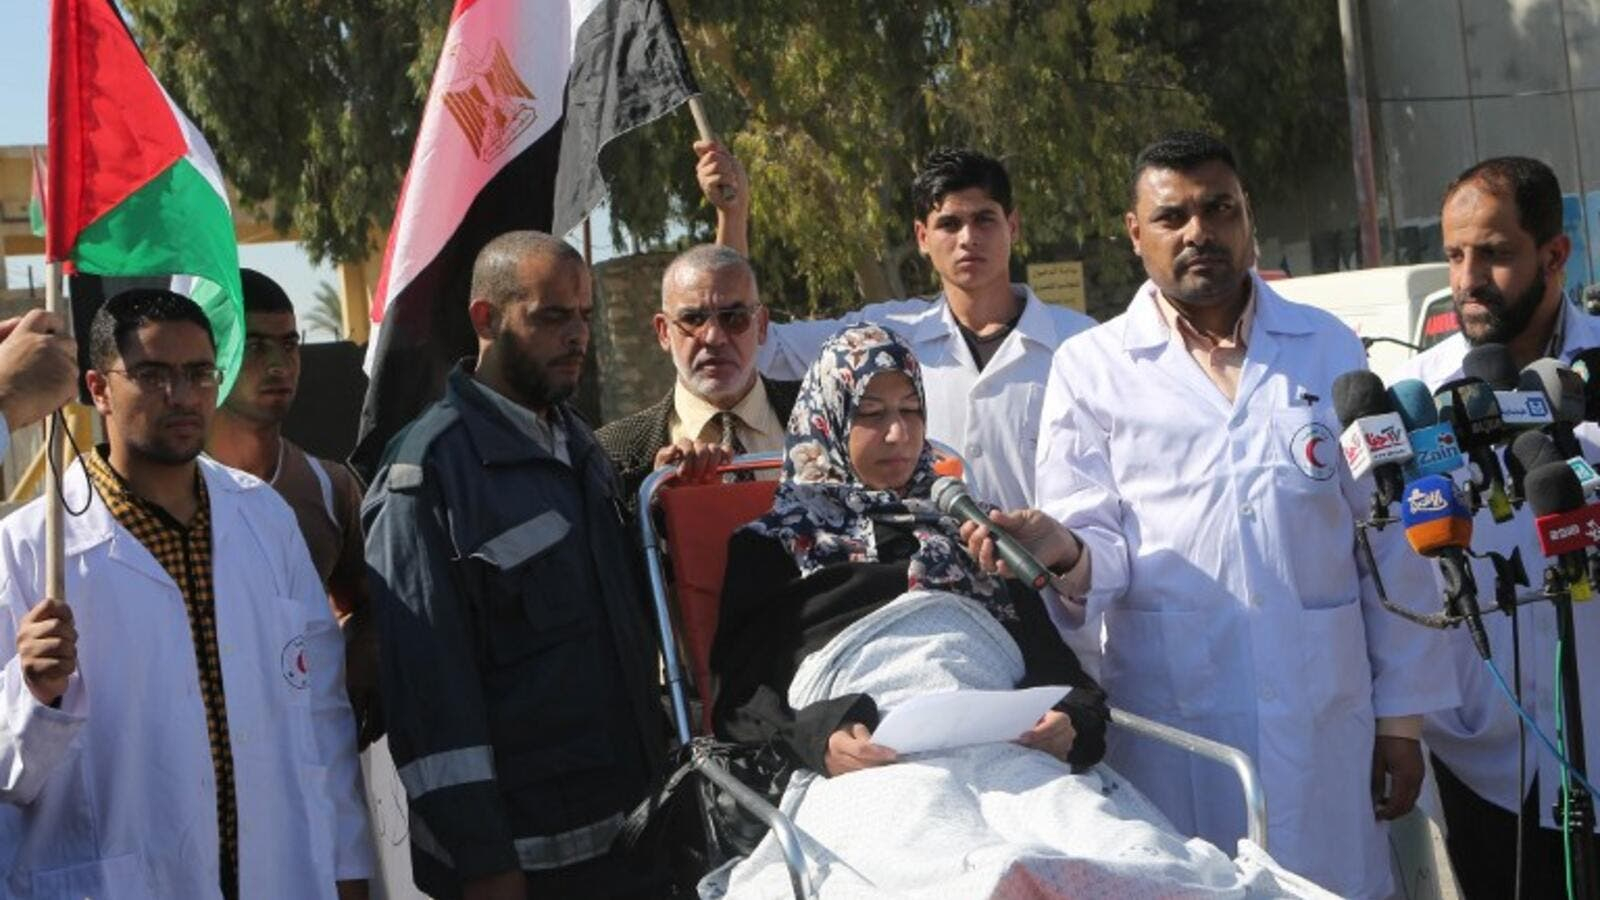 Palestinian medical staff stand next to a patient as she speaks to the media, calling on Egypt to open the Rafah crossing in the southern Gaza Strip on November 6, 2014. (AFP/Said Khatib)